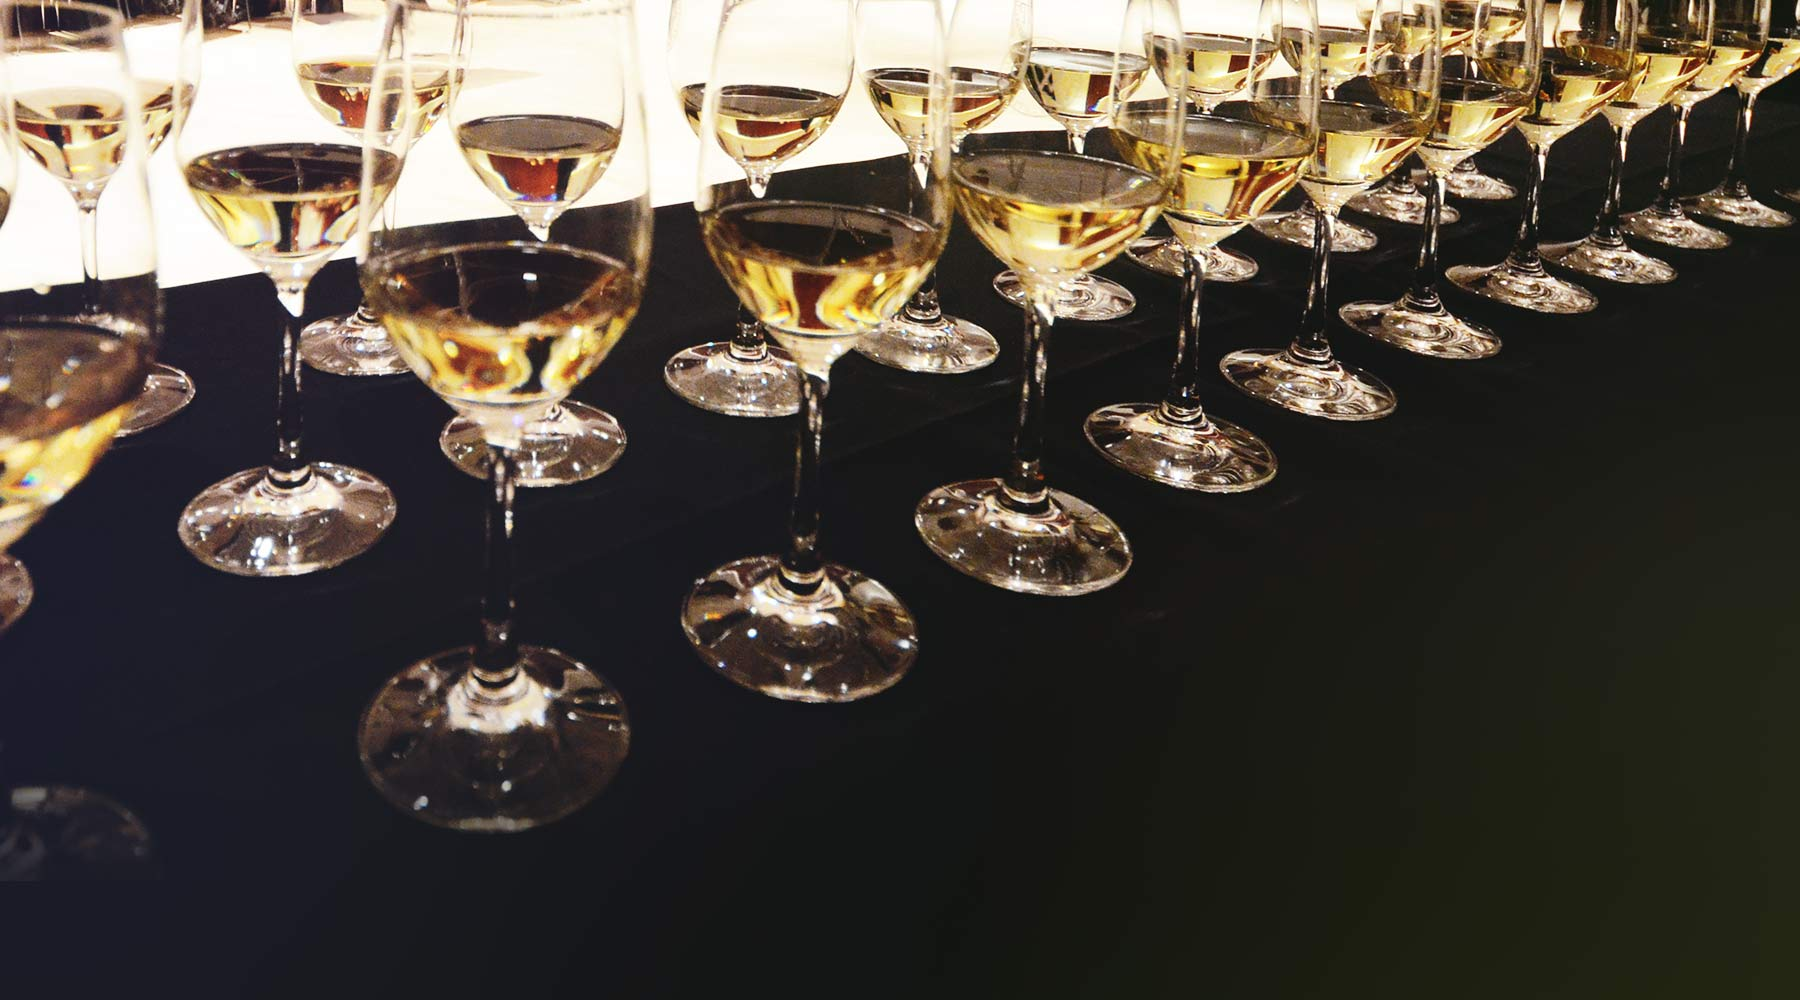 City Wine Tours Presents: West Village Wine Tour | Just Wine